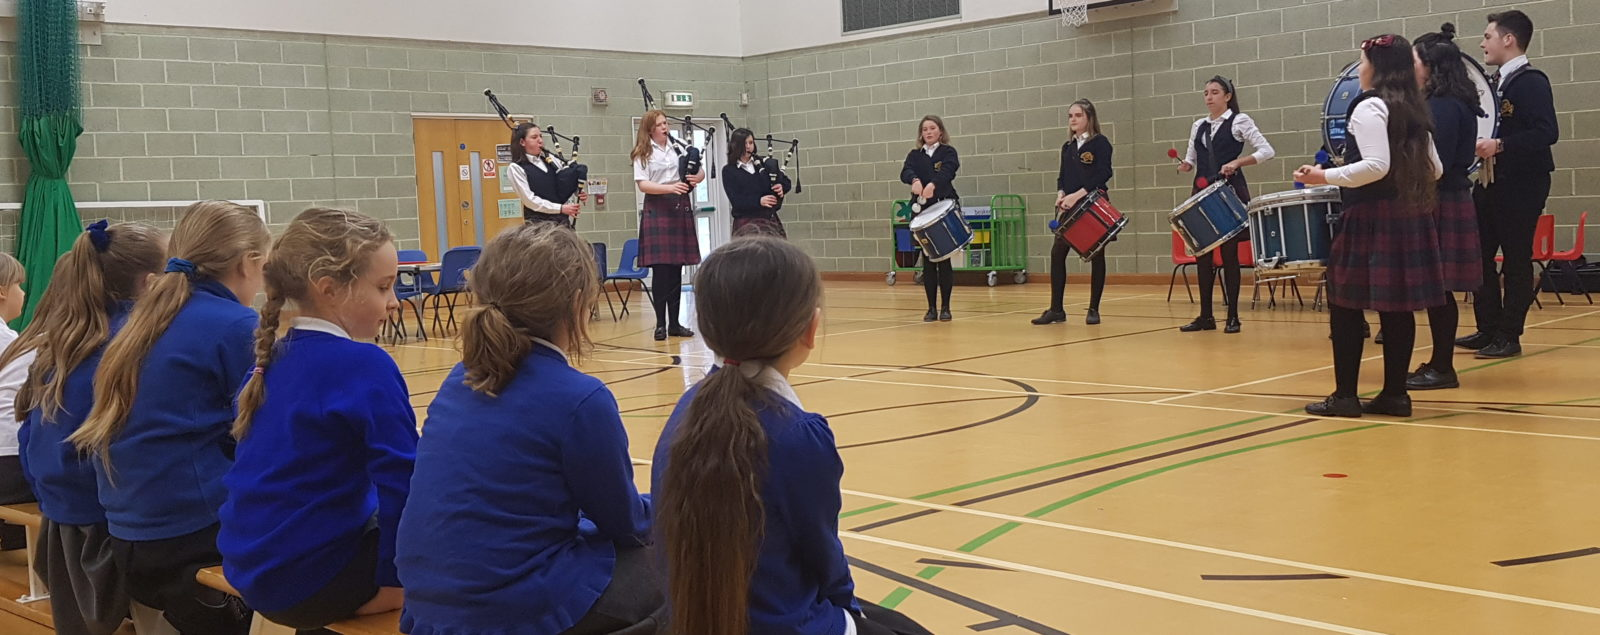 The Buckswood Pipe Band Workshop in the Local Community